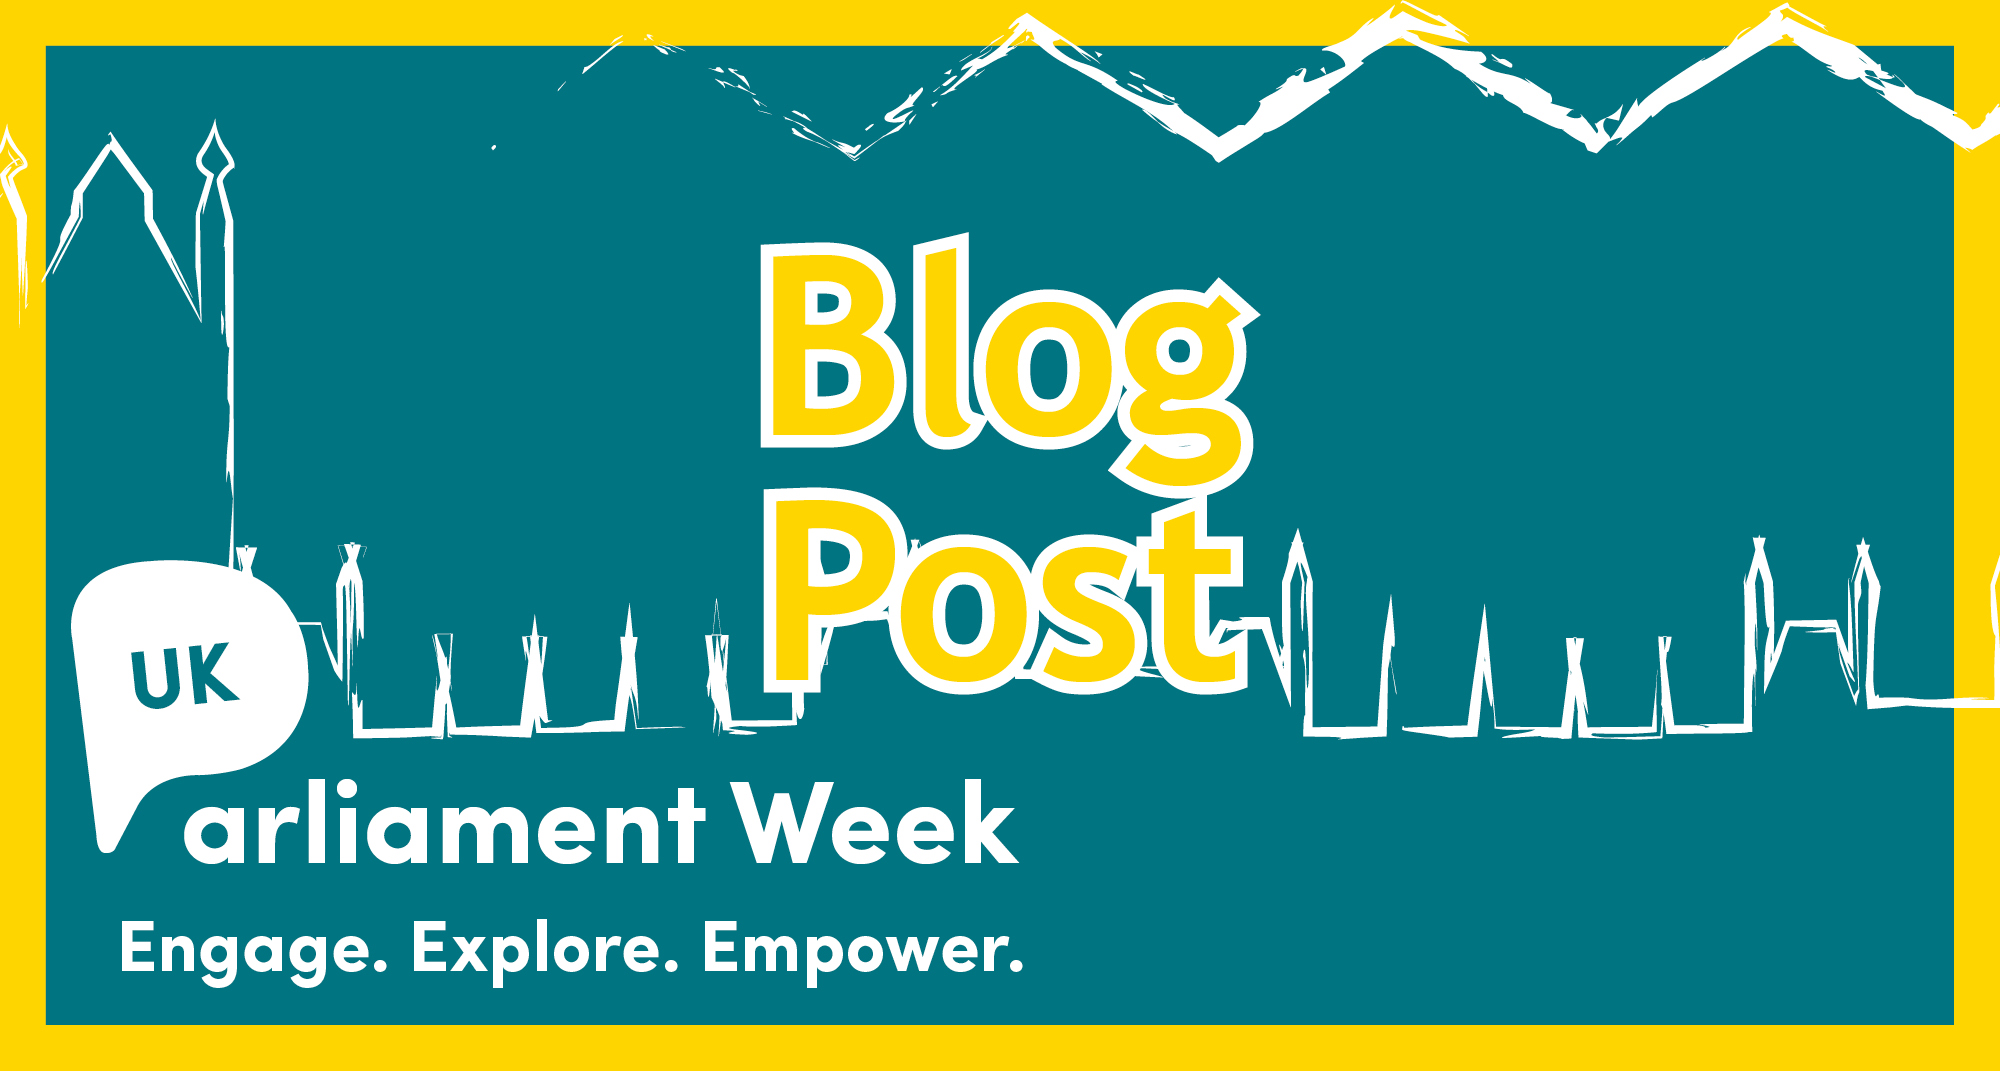 BLOG: UK Parliament Week Resource